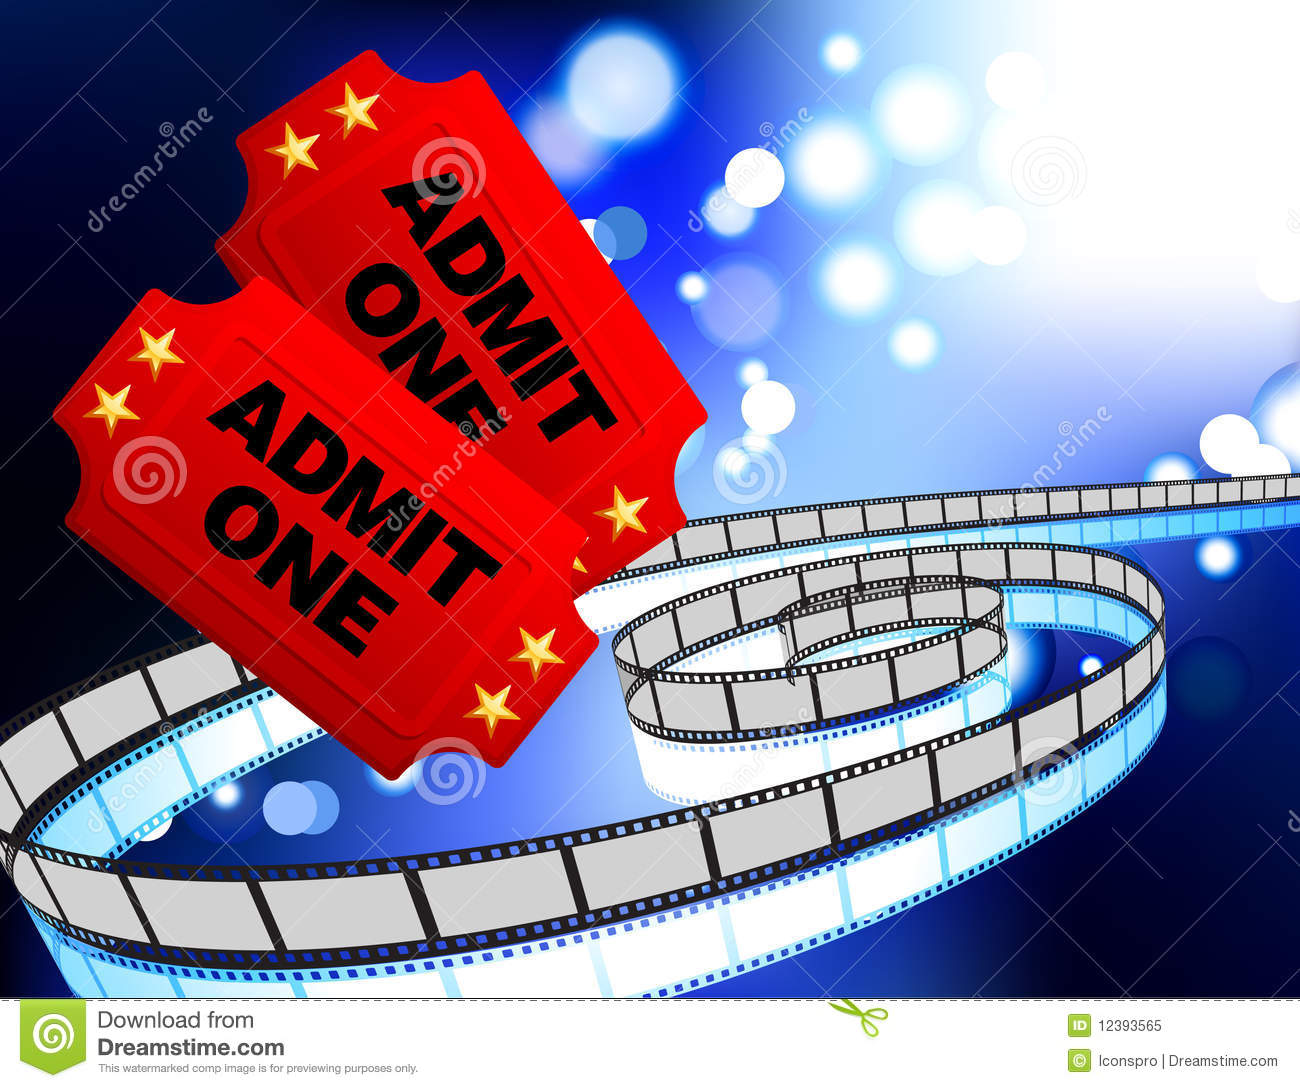 Movie tickets with film reel internet background stock illustration download comp thecheapjerseys Choice Image